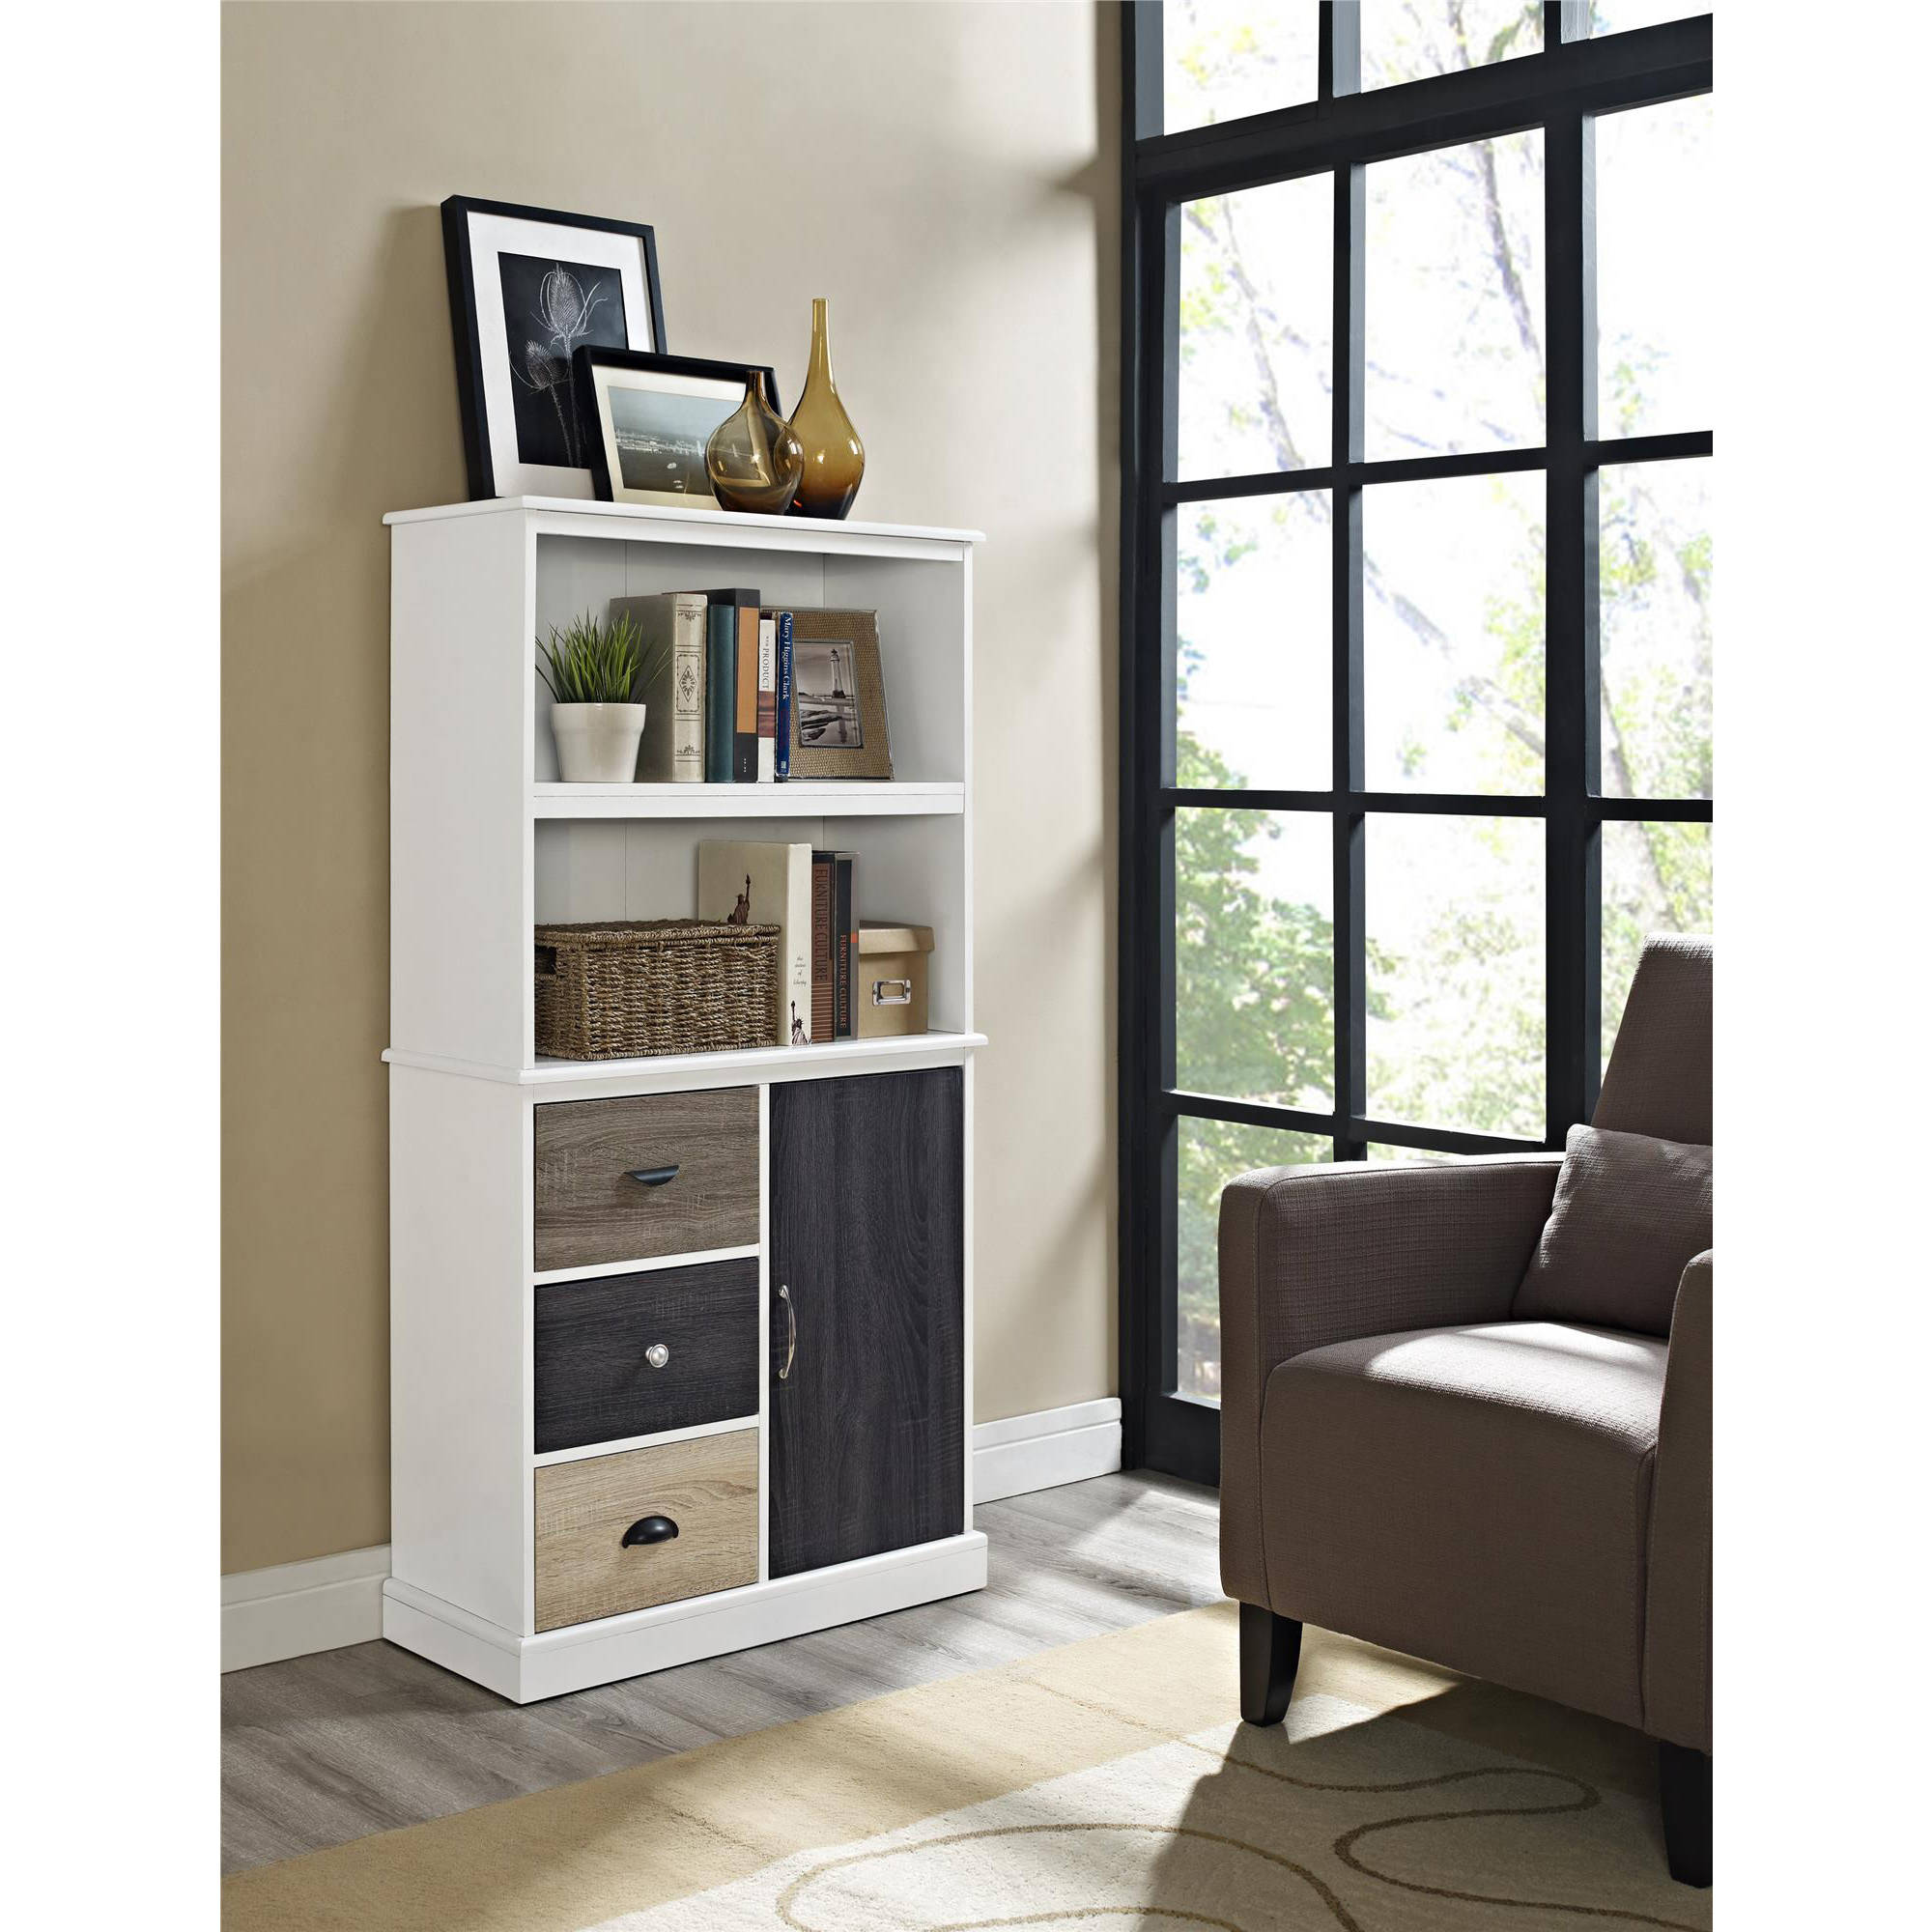 Ameriwood Home Mercer Storage Bookcase with Multicolored Door Drawers, White